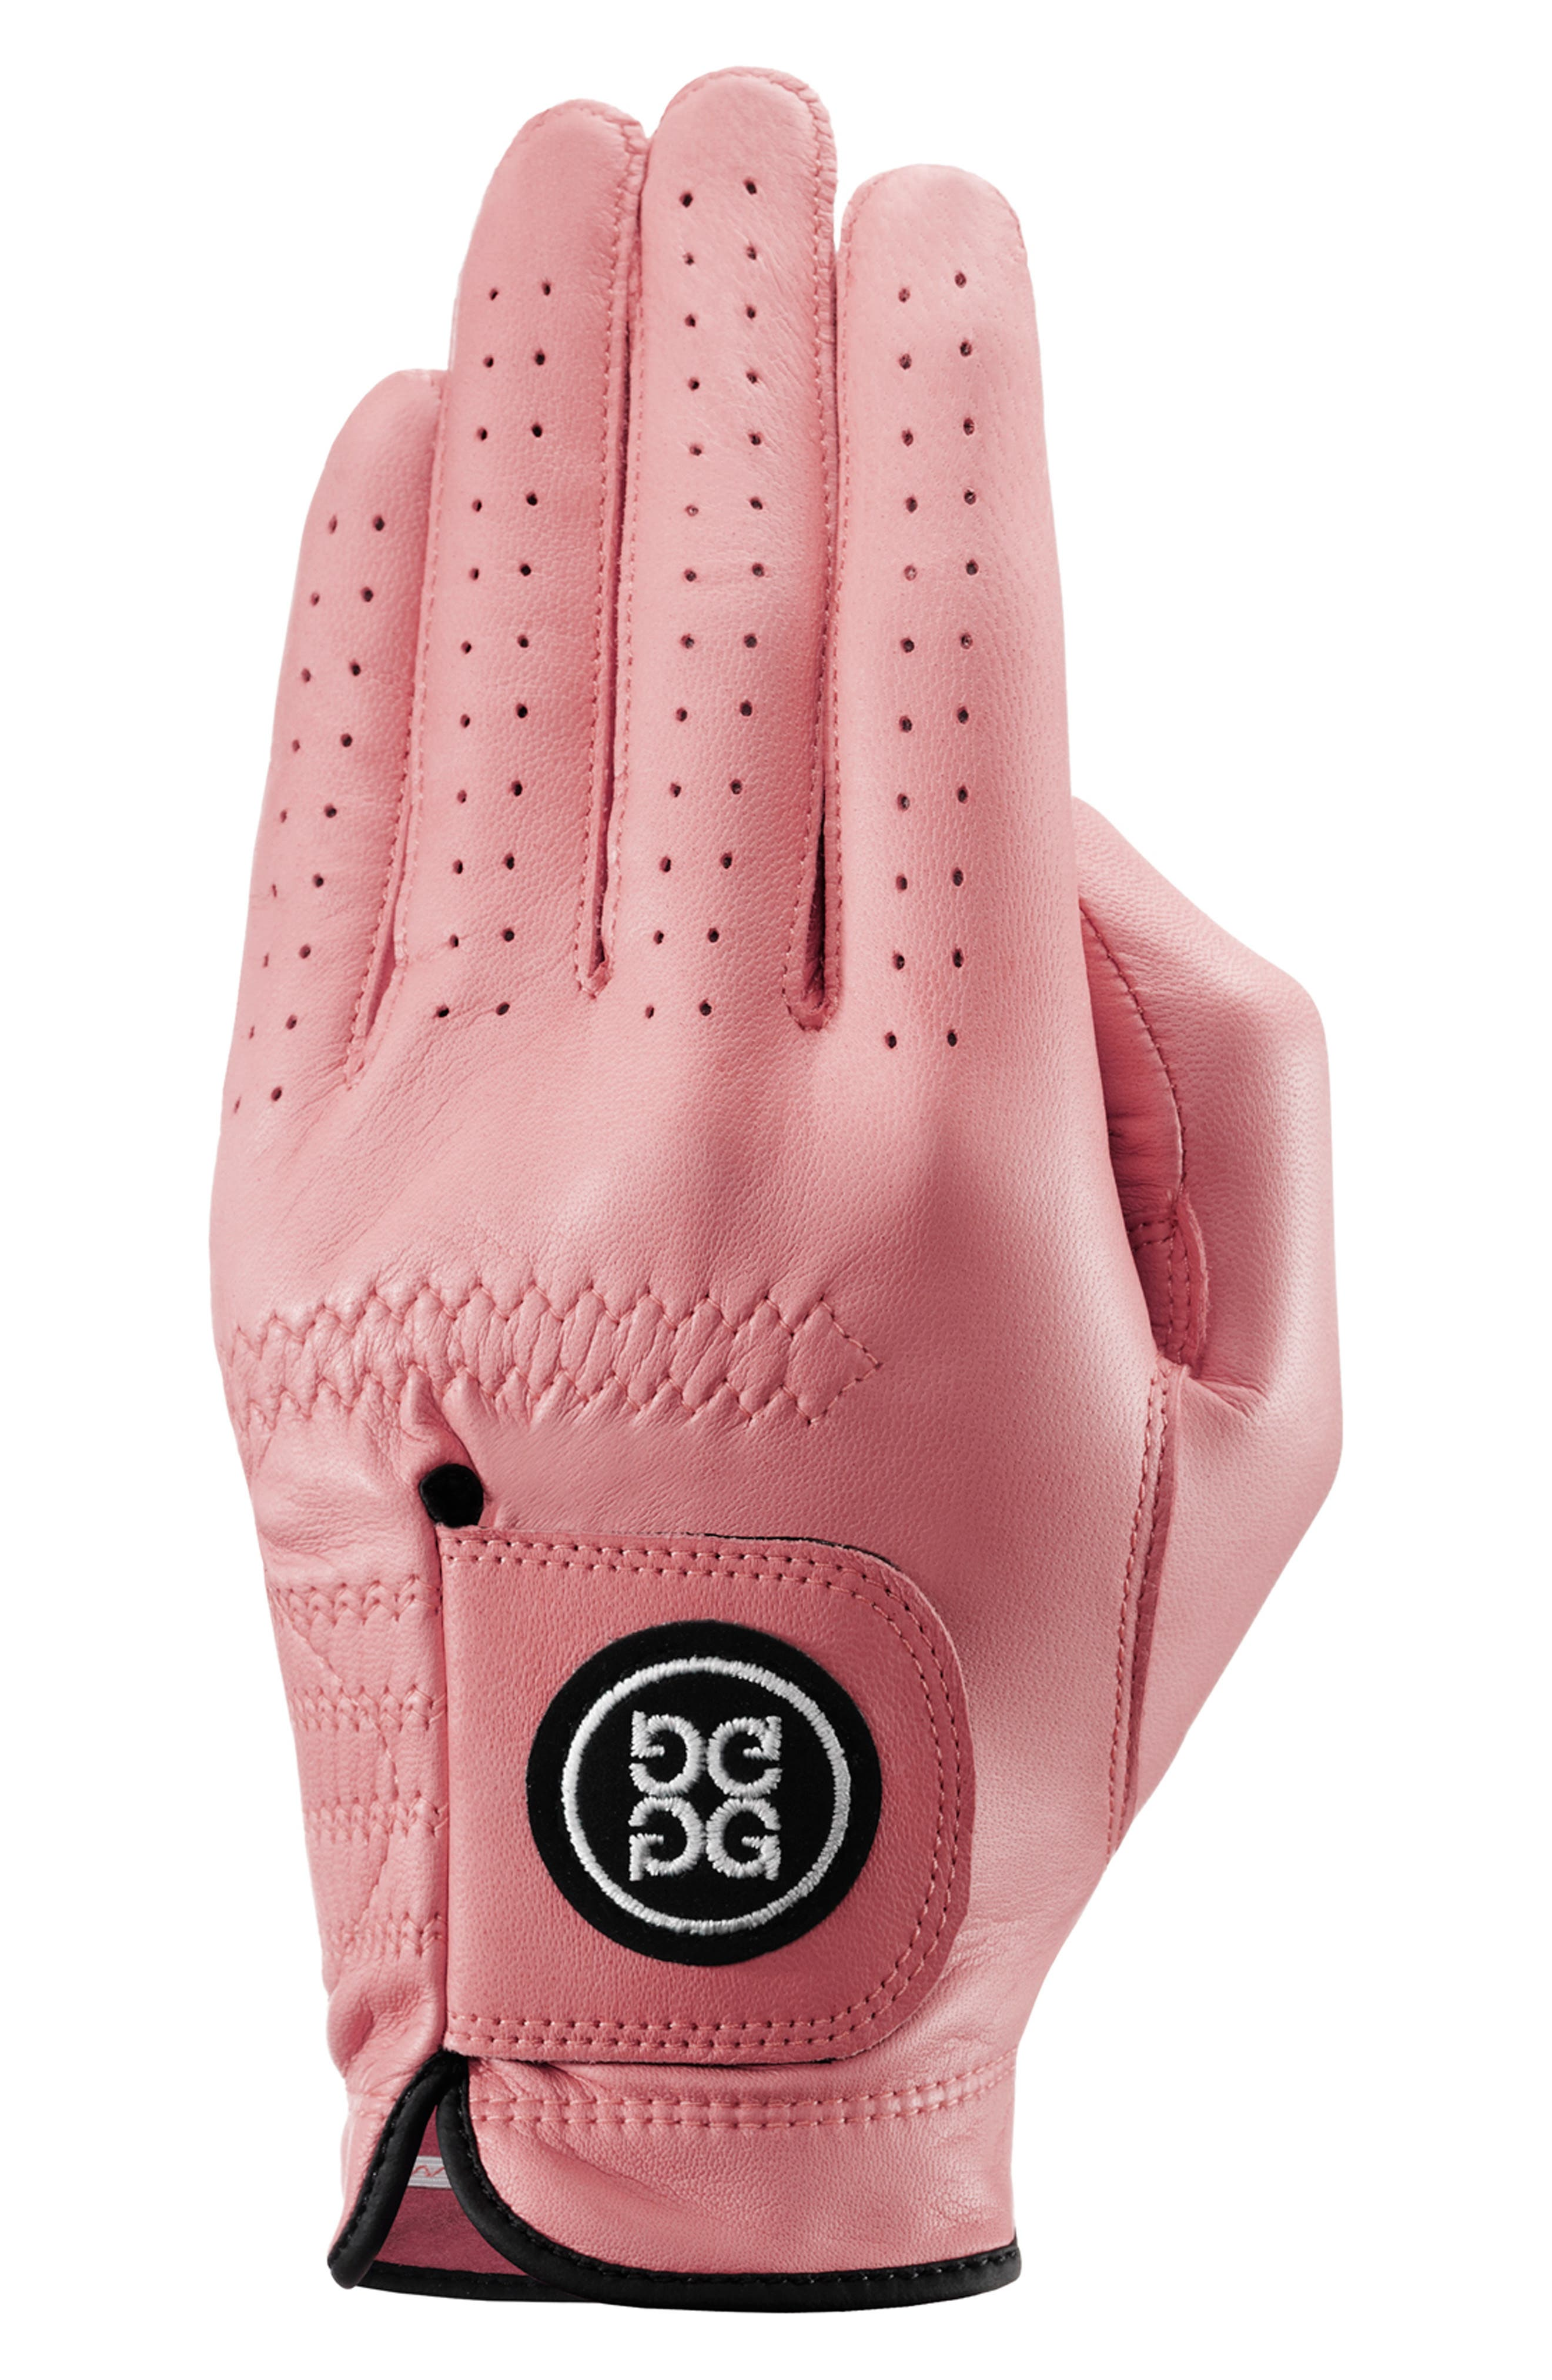 G/fore The Collection Leather Golf Glove, Pink